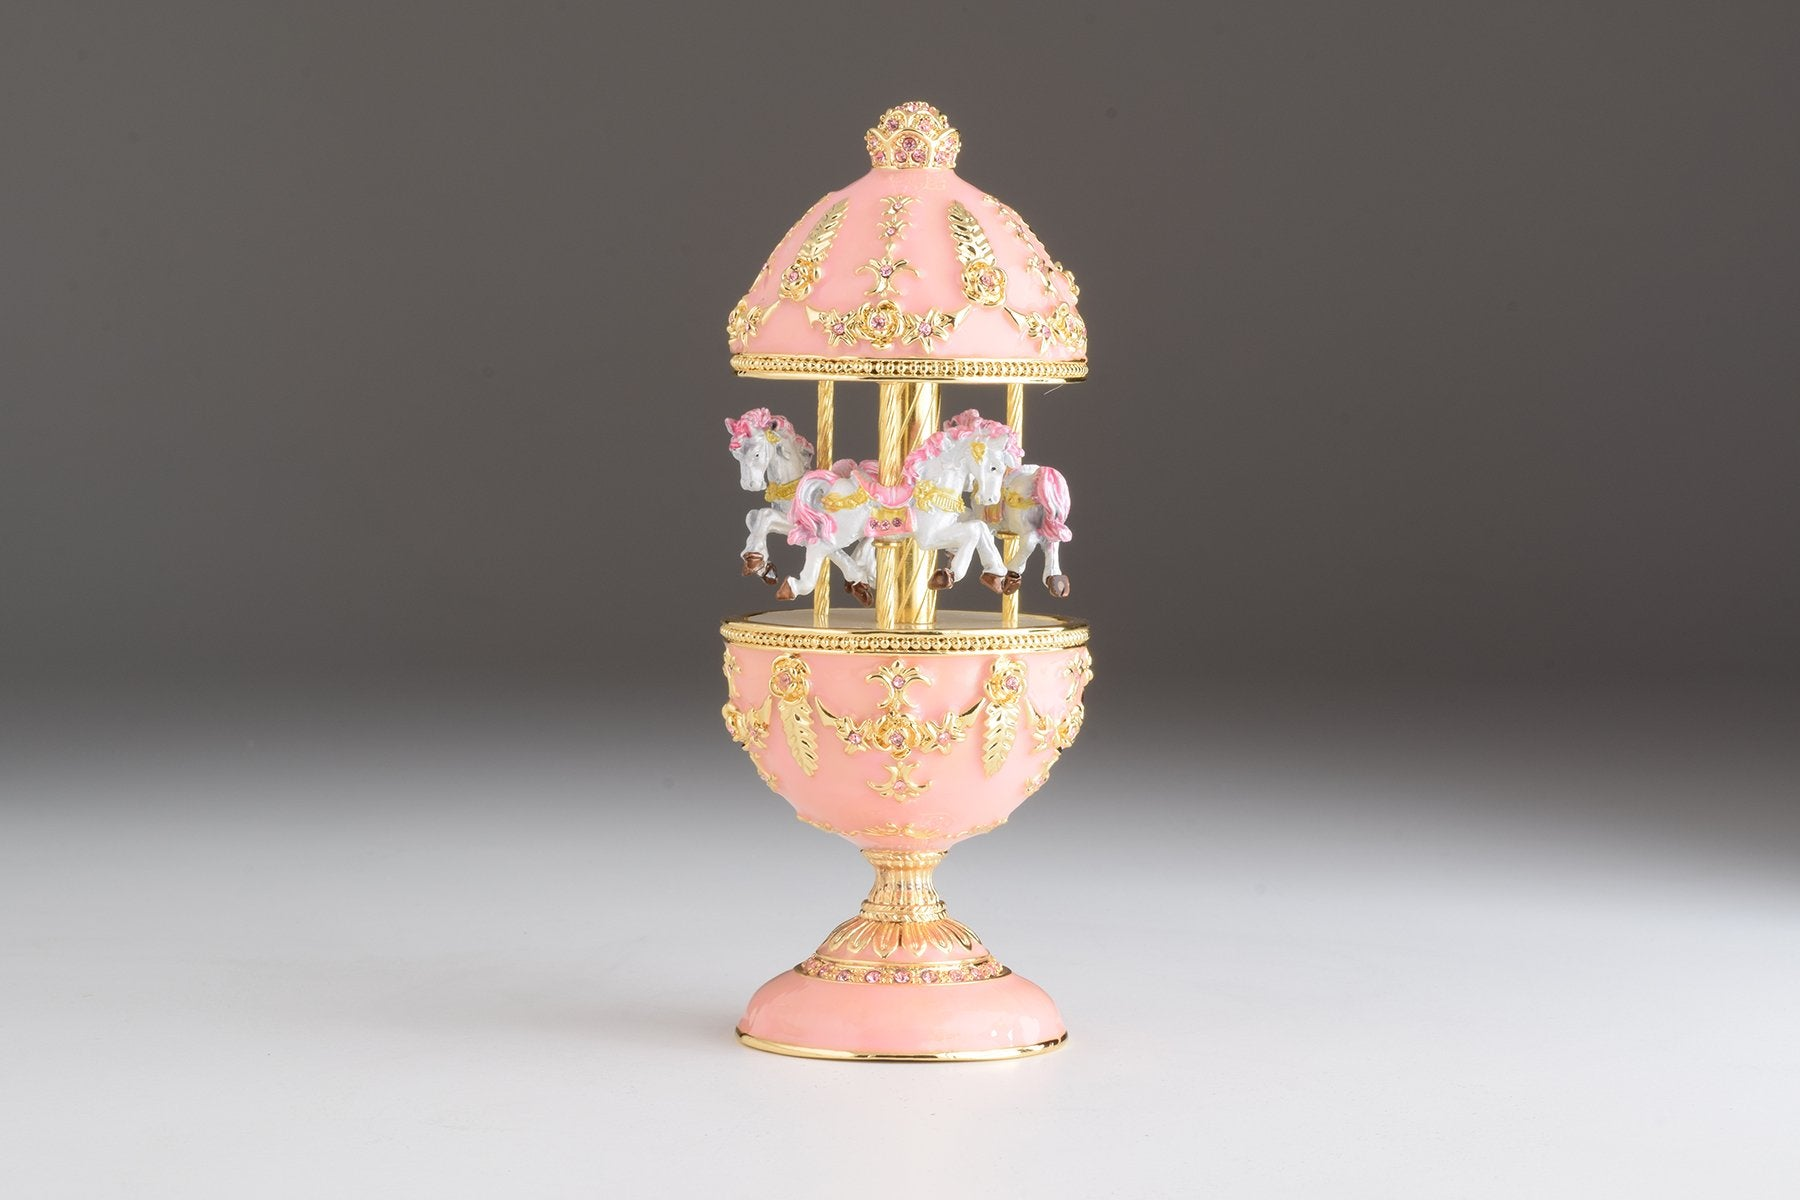 Pink Carousel Faberge Egg with White Royal Horses